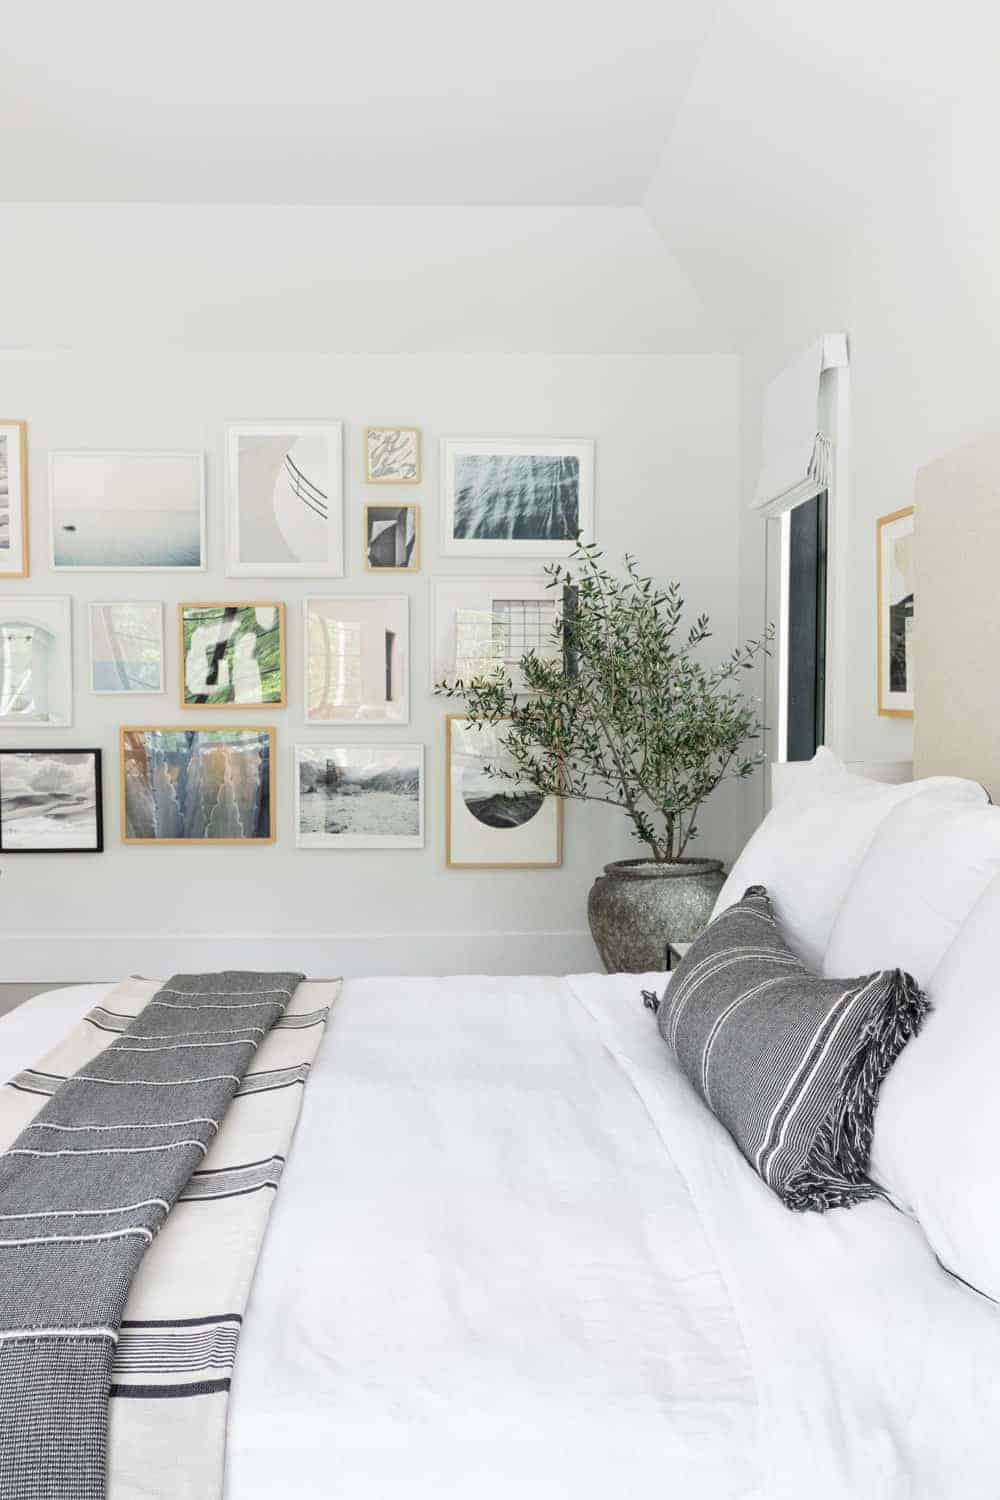 The master bedroom is surrounded by white walls and ceiling. The walls are decorated with multiple framed wall decors.